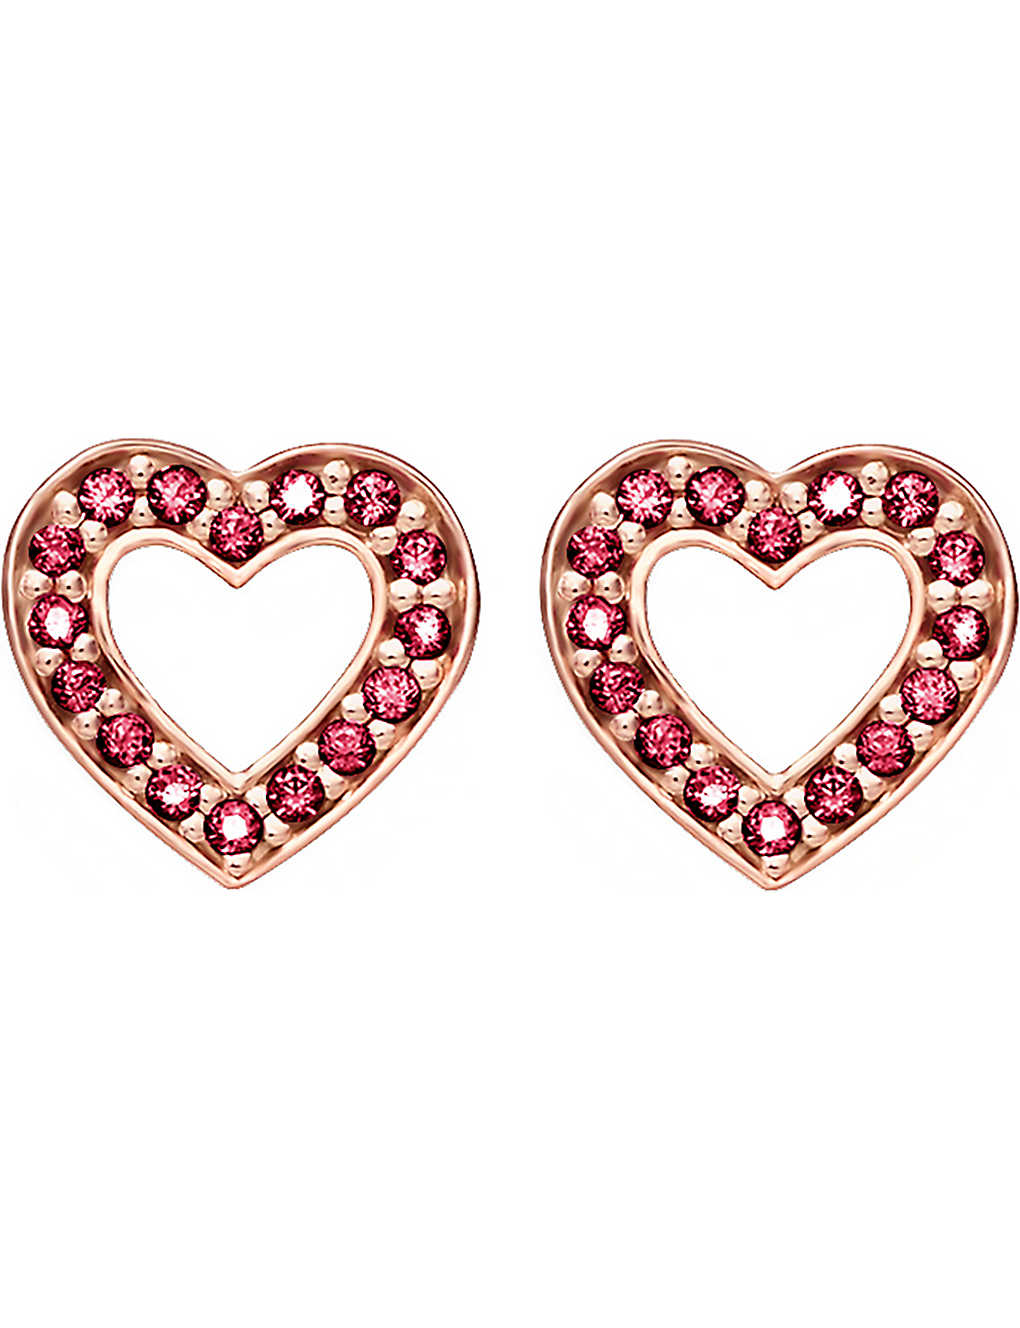 90bb74c06 THOMAS SABO - Glam & Soul heart 18ct rose gold-plated earrings ...